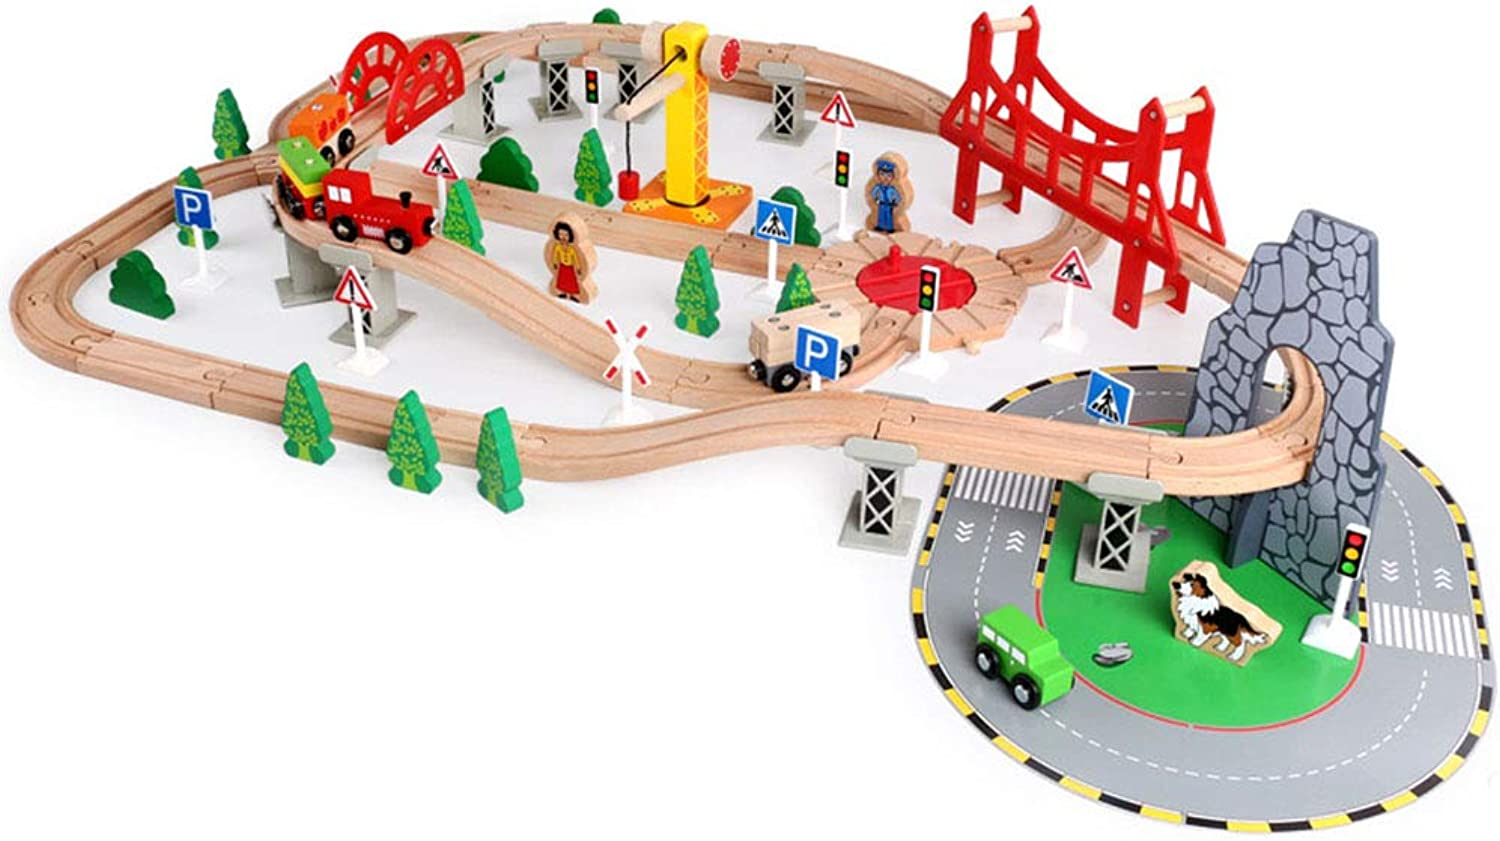 Wooden Rail Transit Scene Small Train Set Wooden DIY Puzzle Building Blocks Toy Gift (100 Pieces)